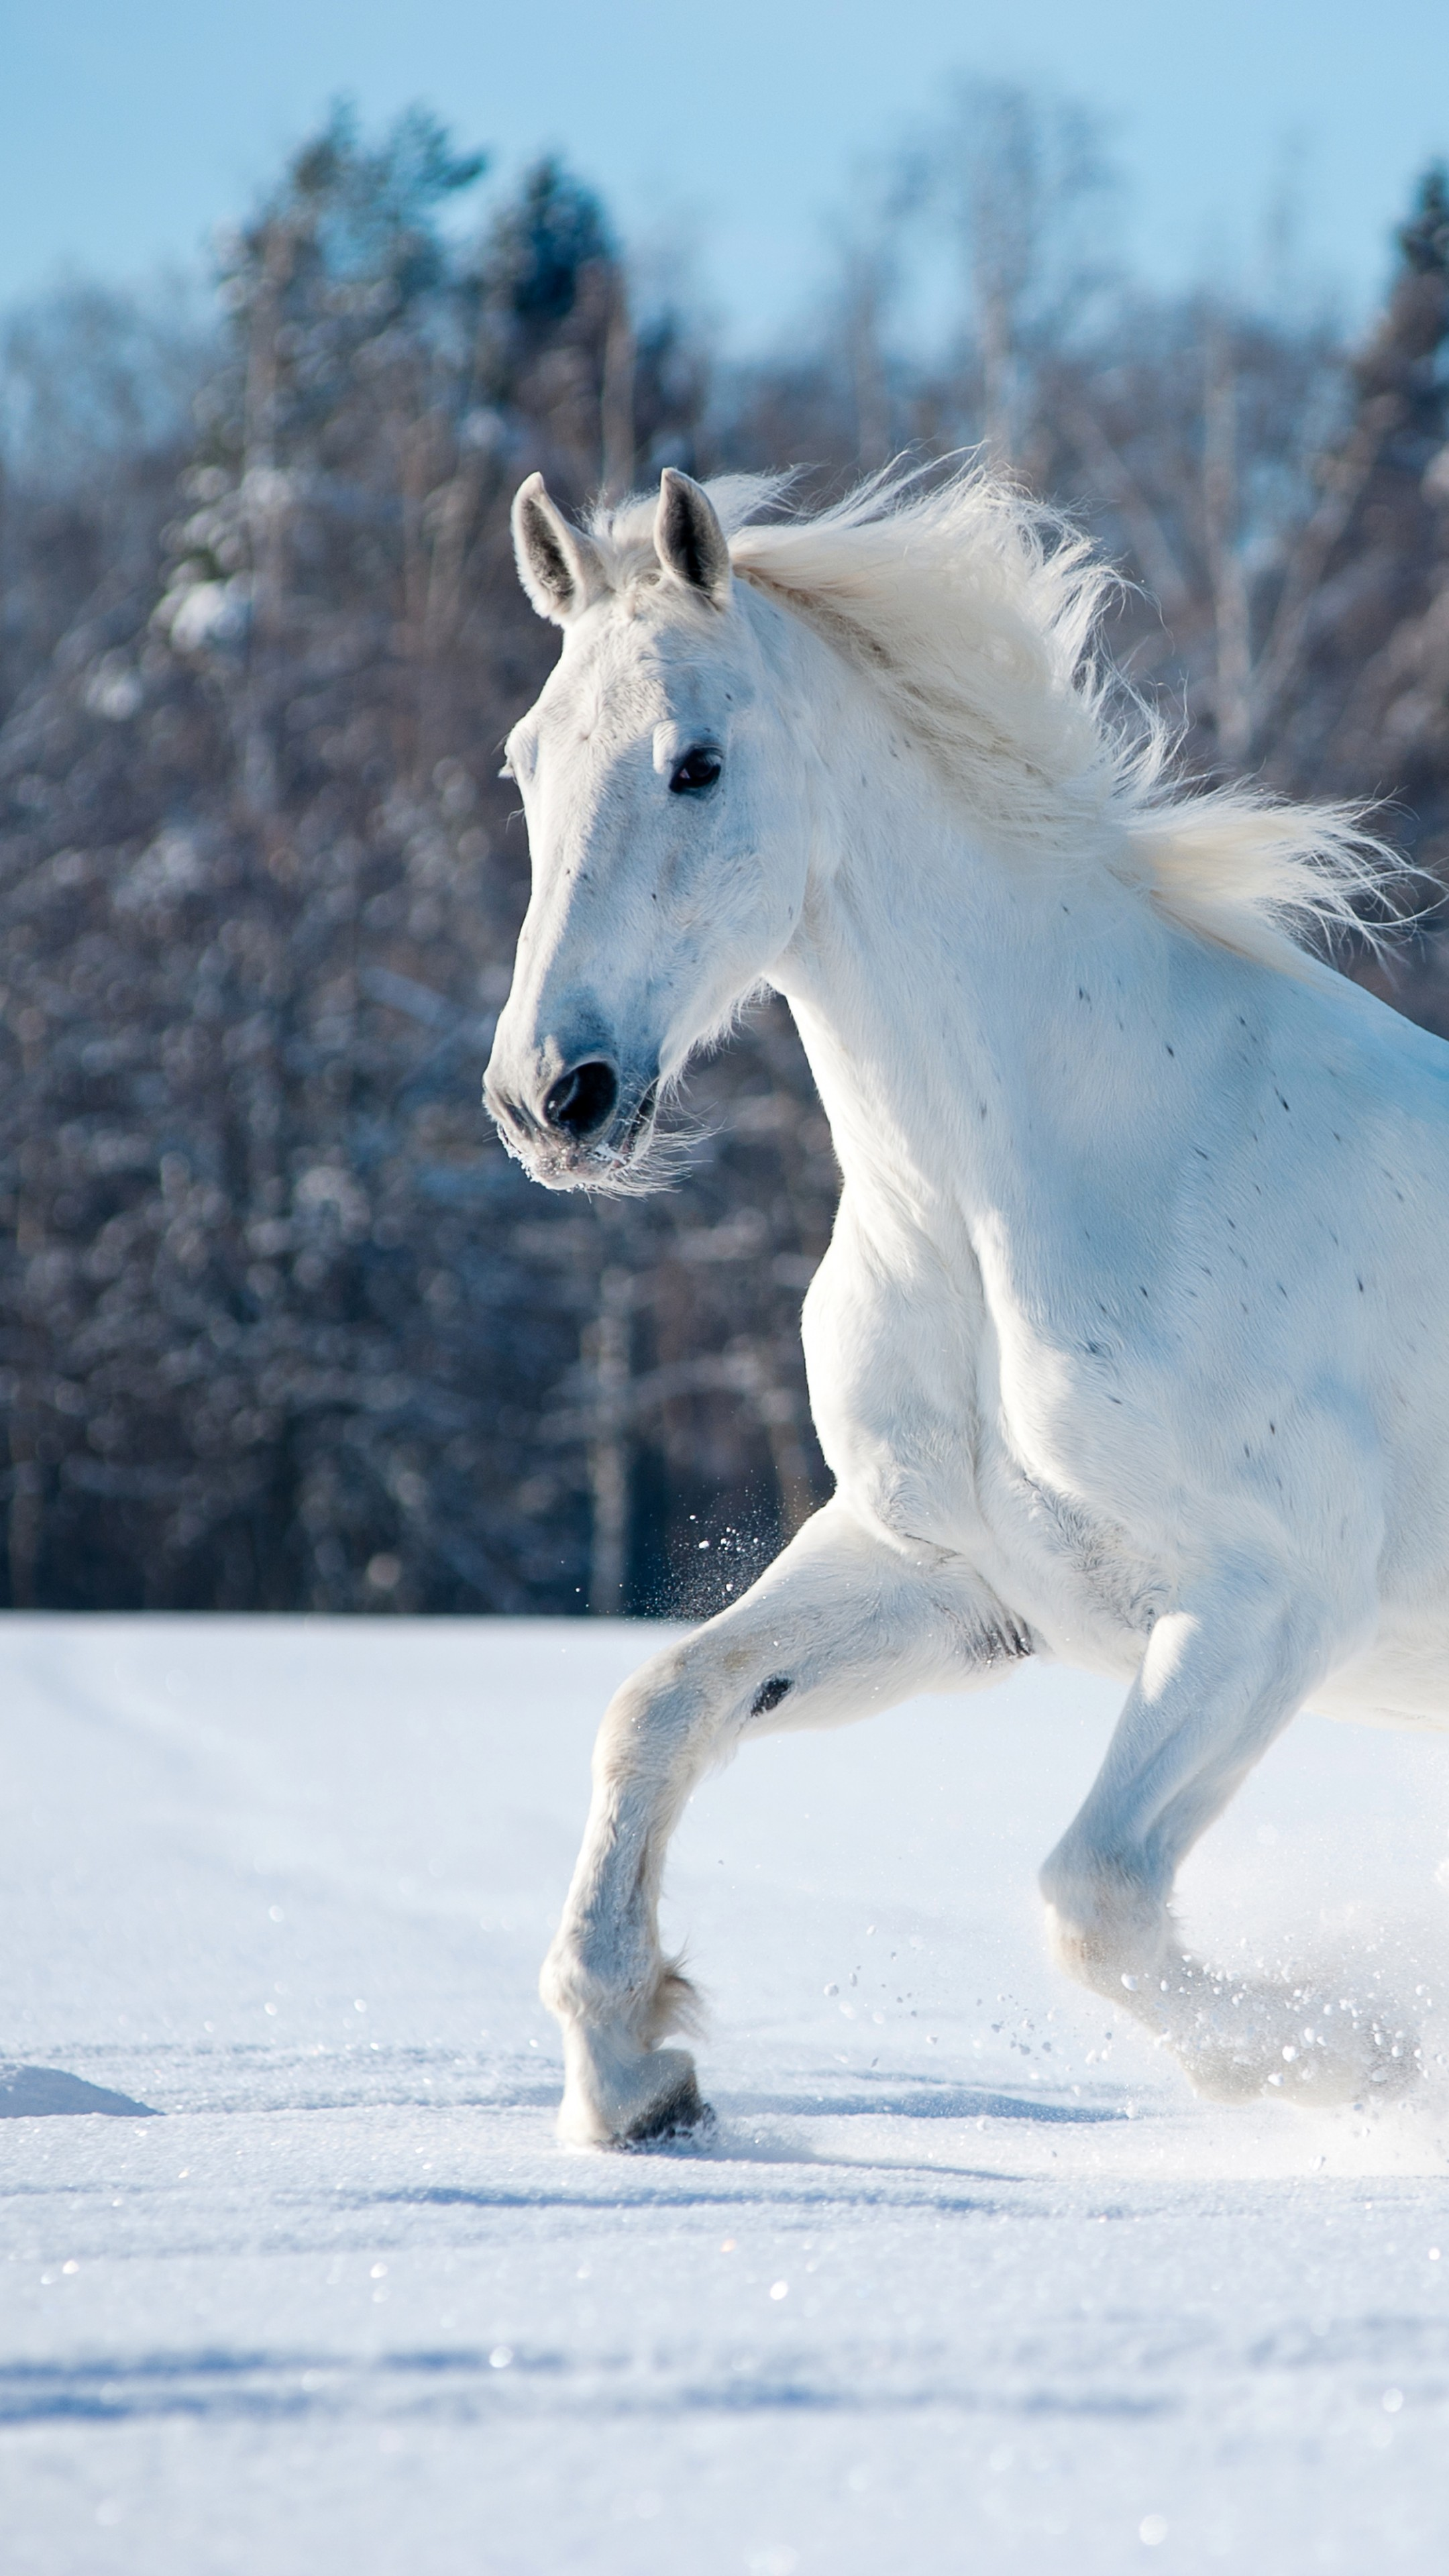 Wallpaper Horse Cute Animals Snow Winter 5k Animals 17108